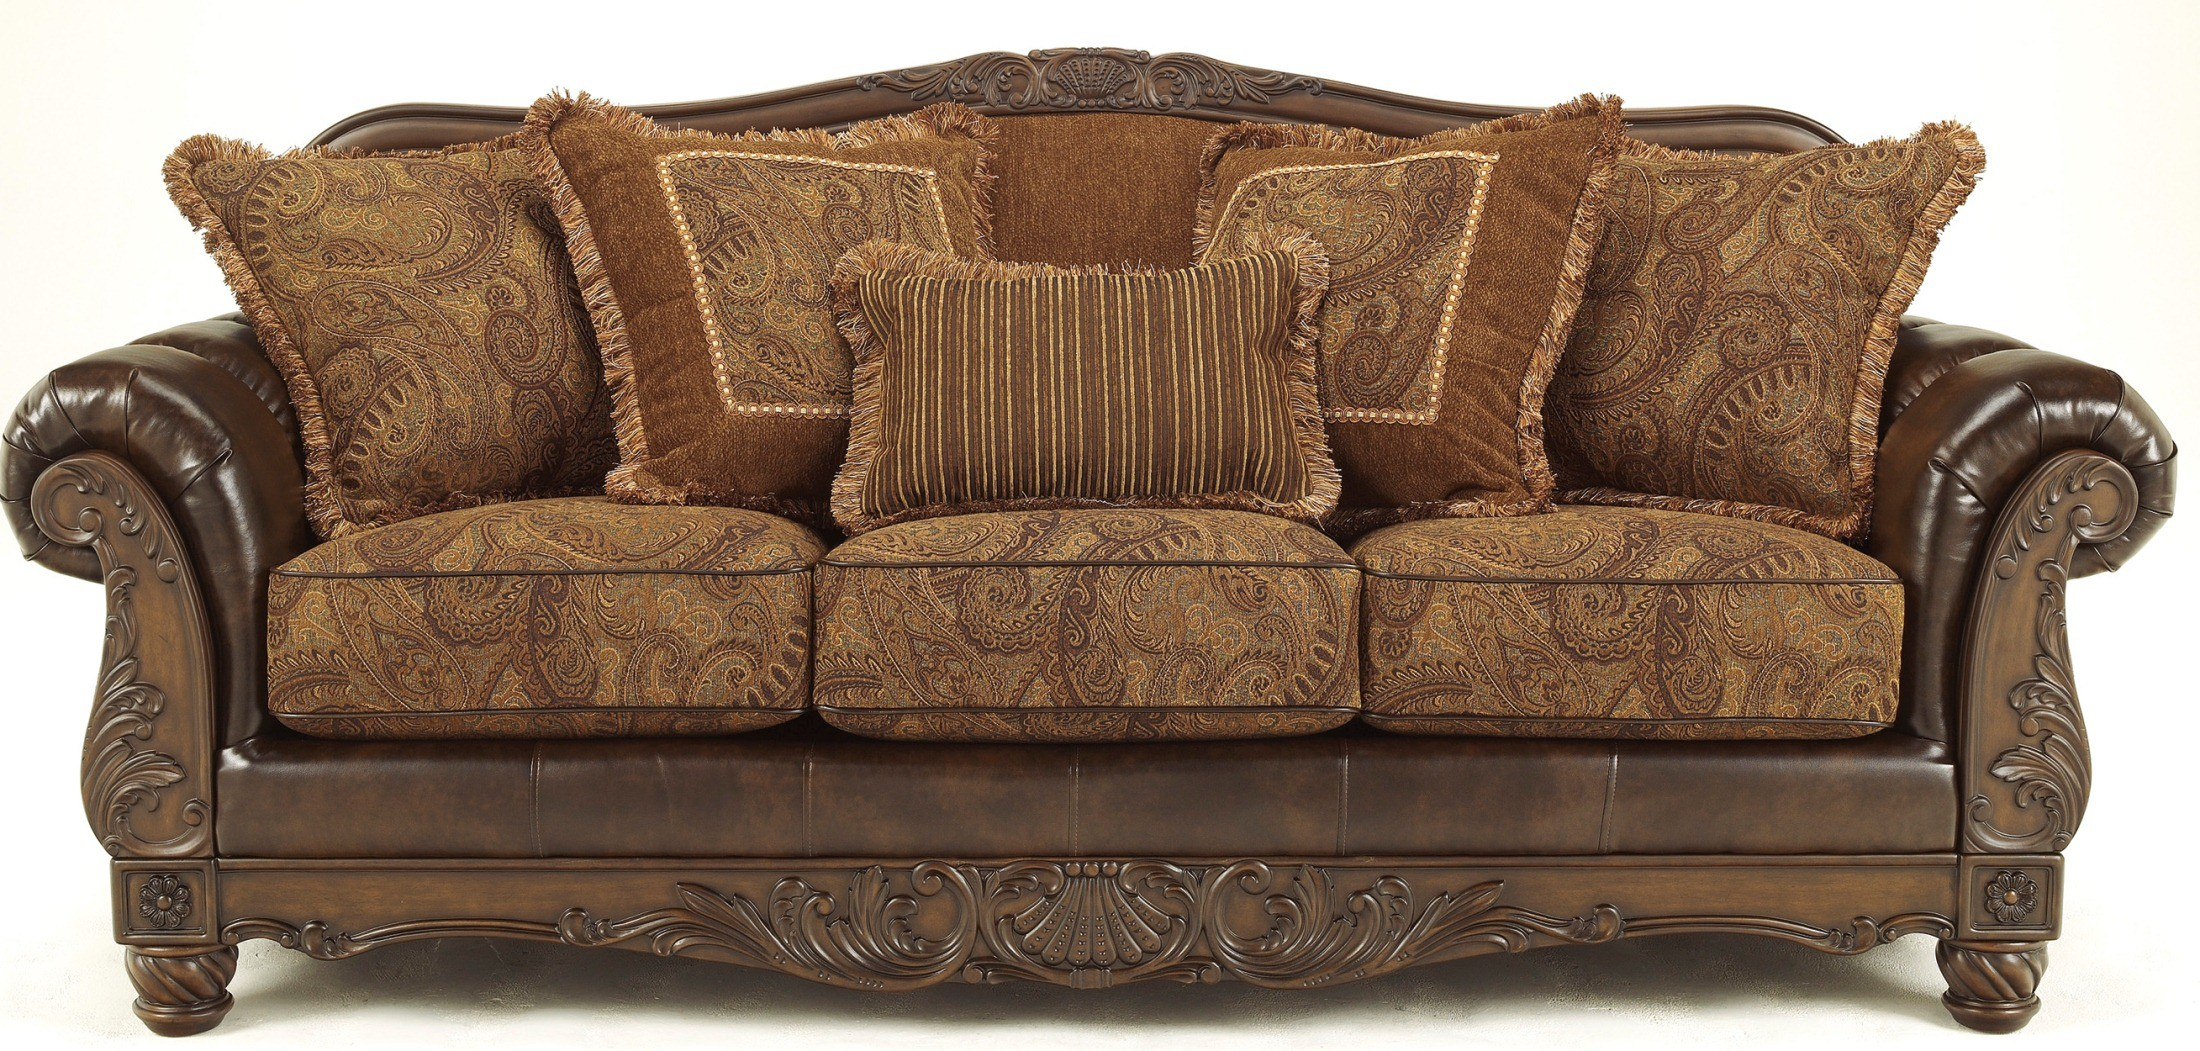 Fresco Durablend Antique Sofa From Ashley 6310038